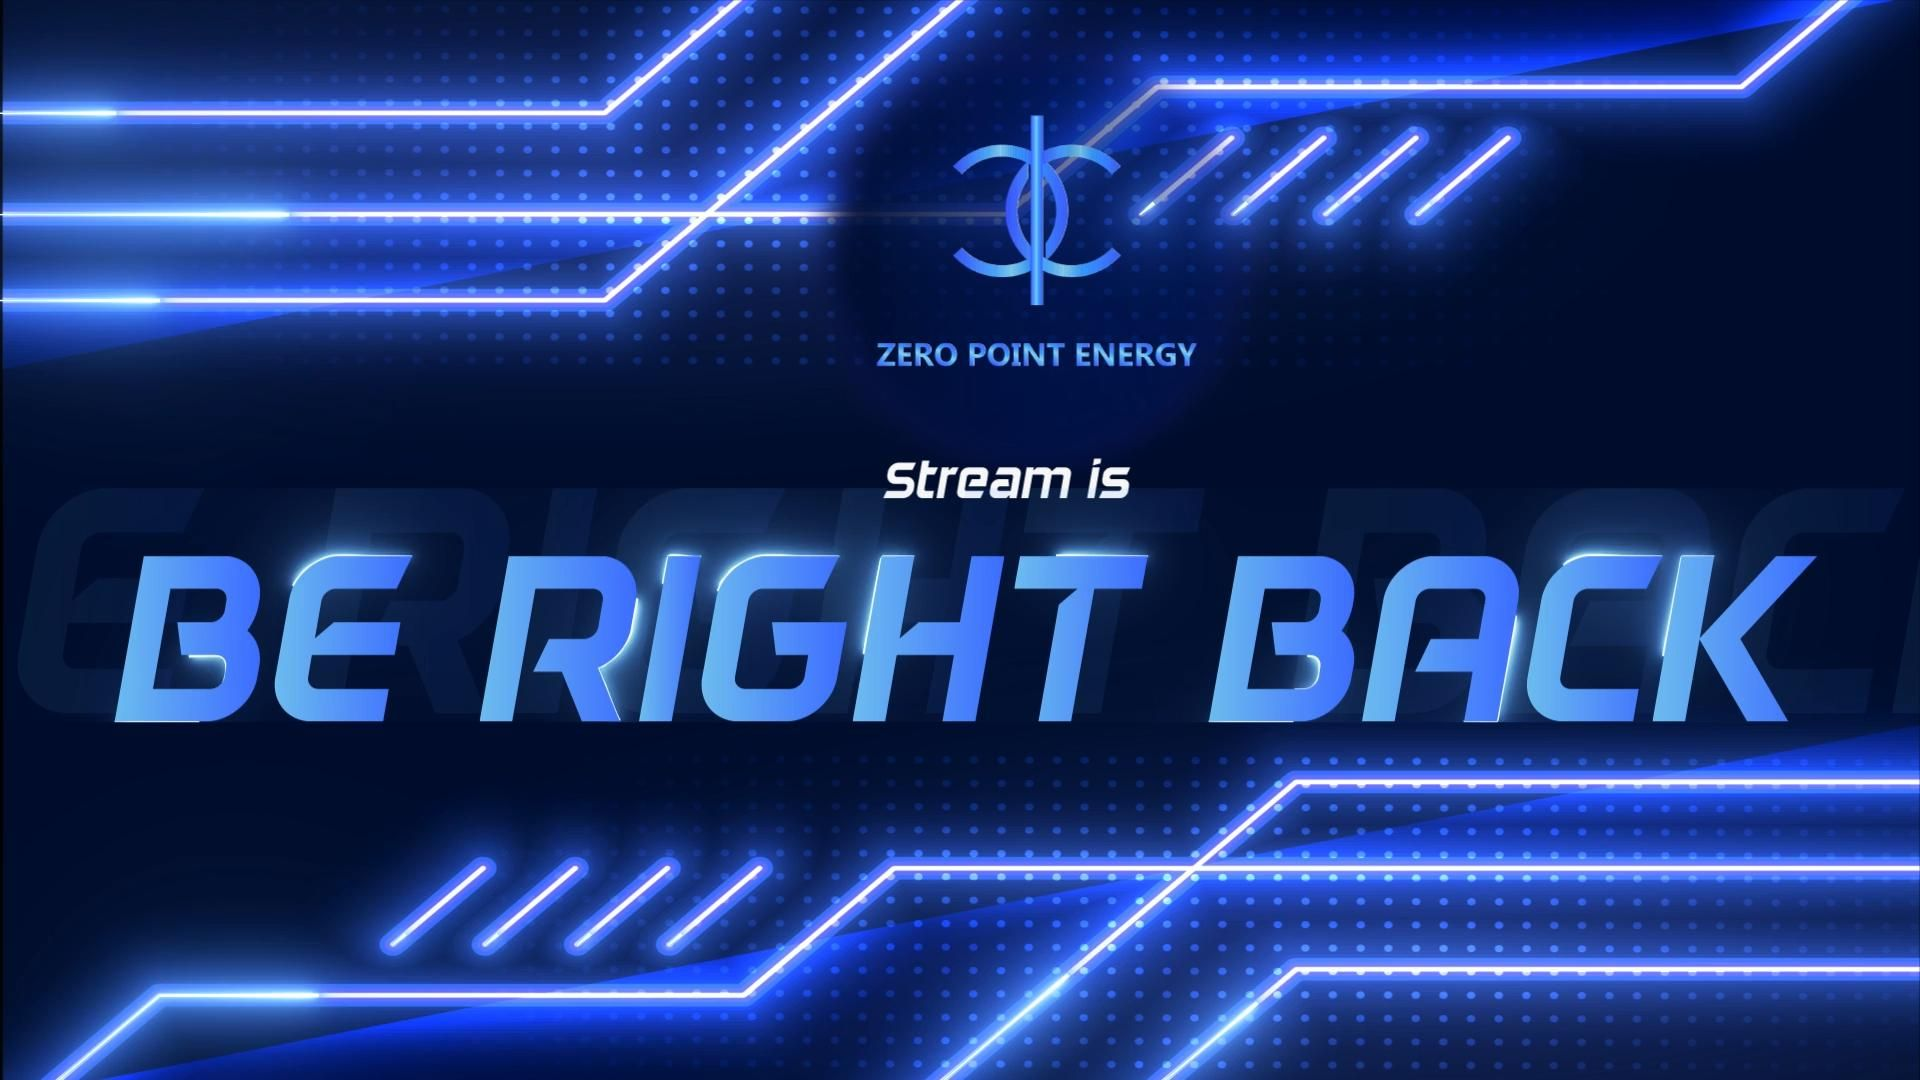 Animated Be Right Back Screen Animated Twitch Overlays Video In 2021 Animation Studio Logo Design Art Logo Illustration Design